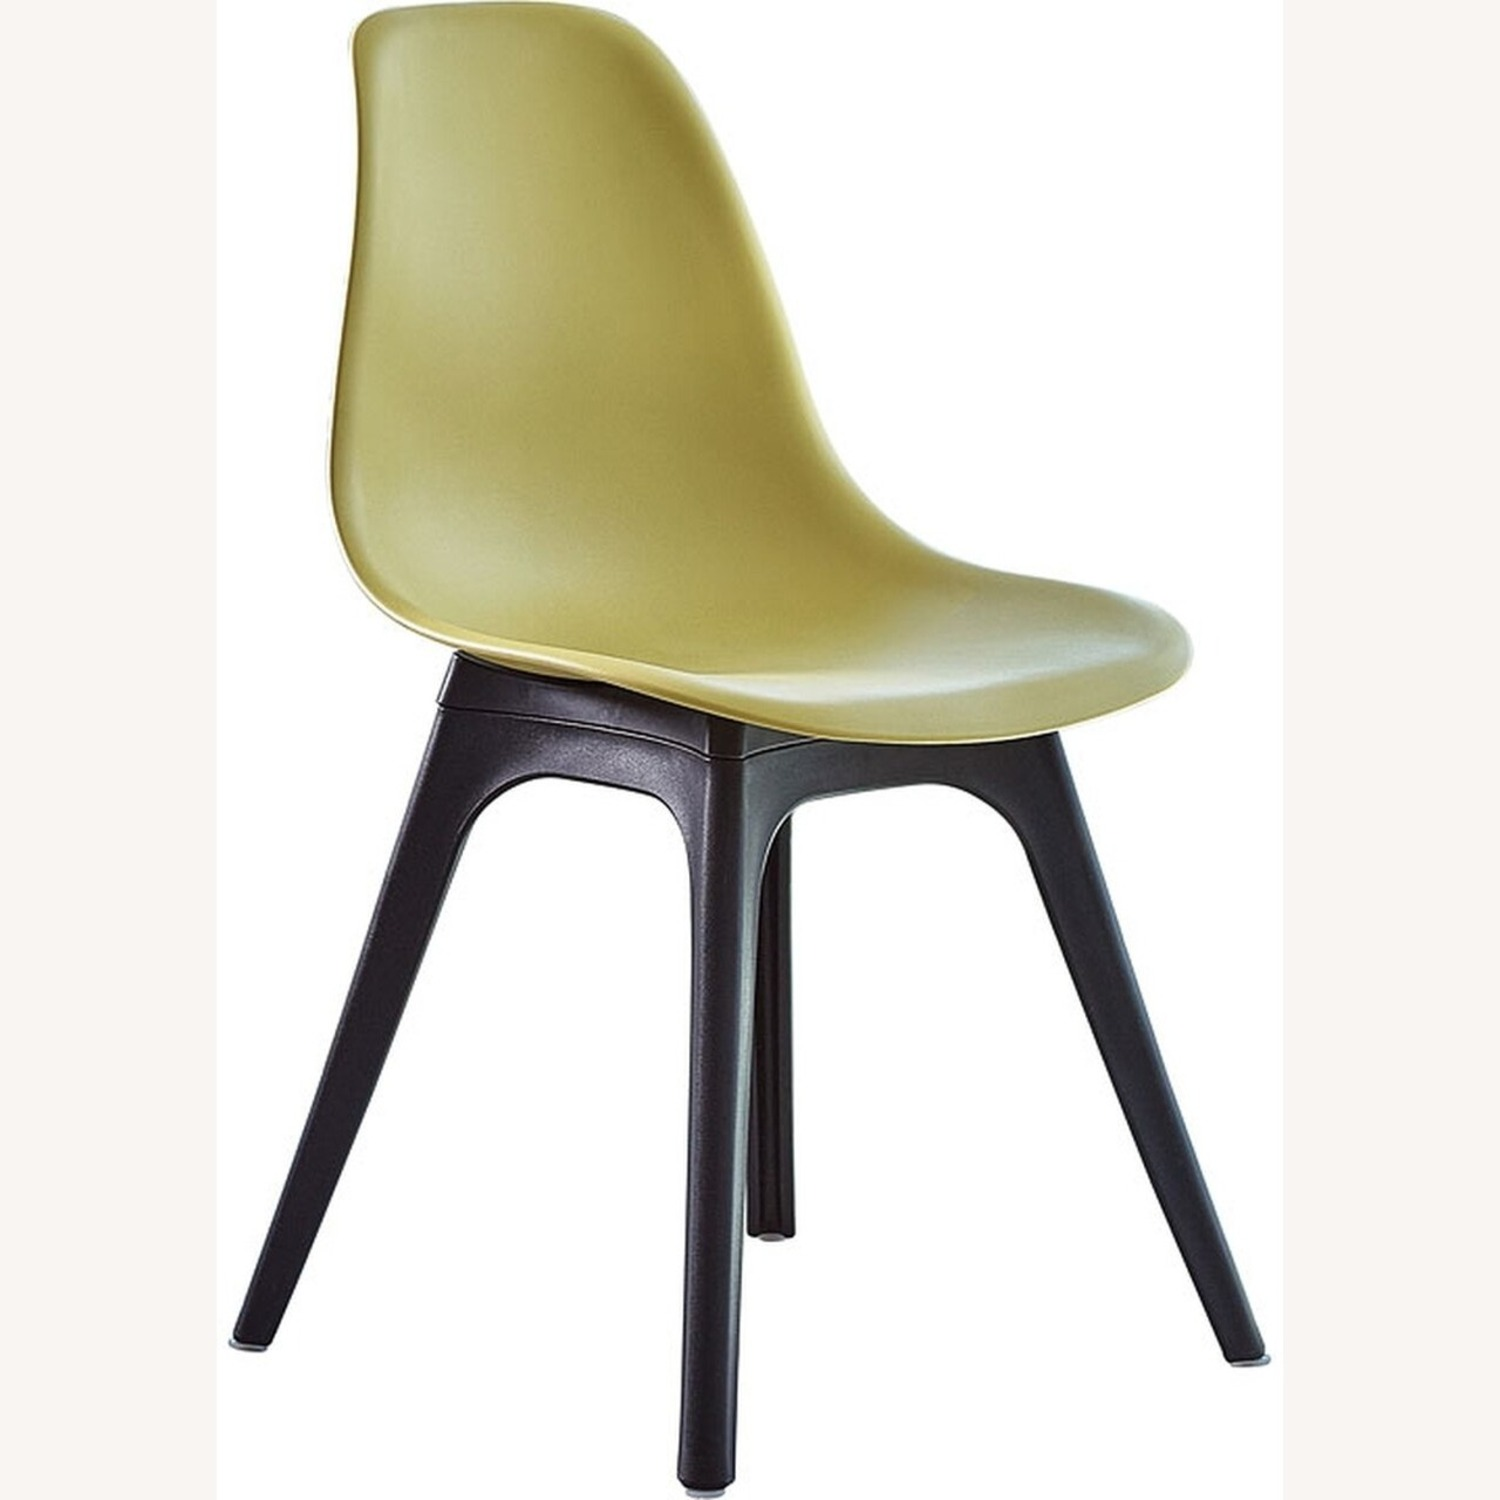 Side Chair In Lemon Color Finish - image-1